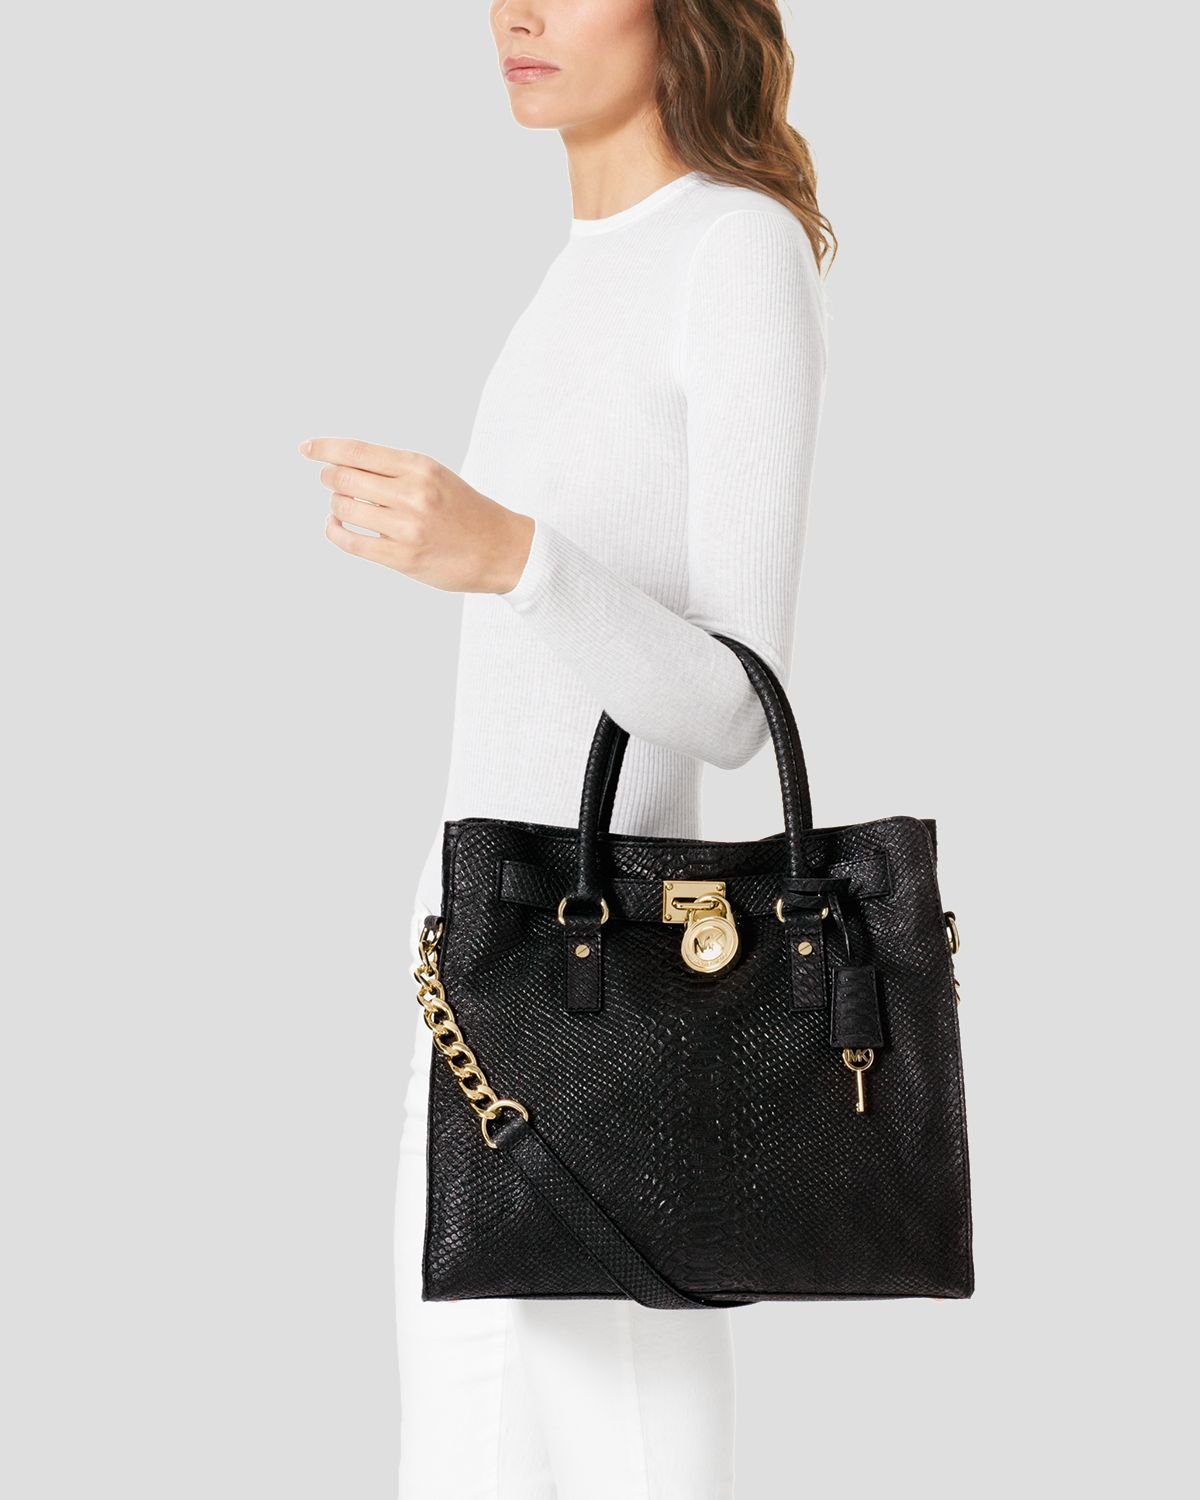 2a59b328b6cc Lyst - MICHAEL Michael Kors Tote Hamilton Large North South in Black